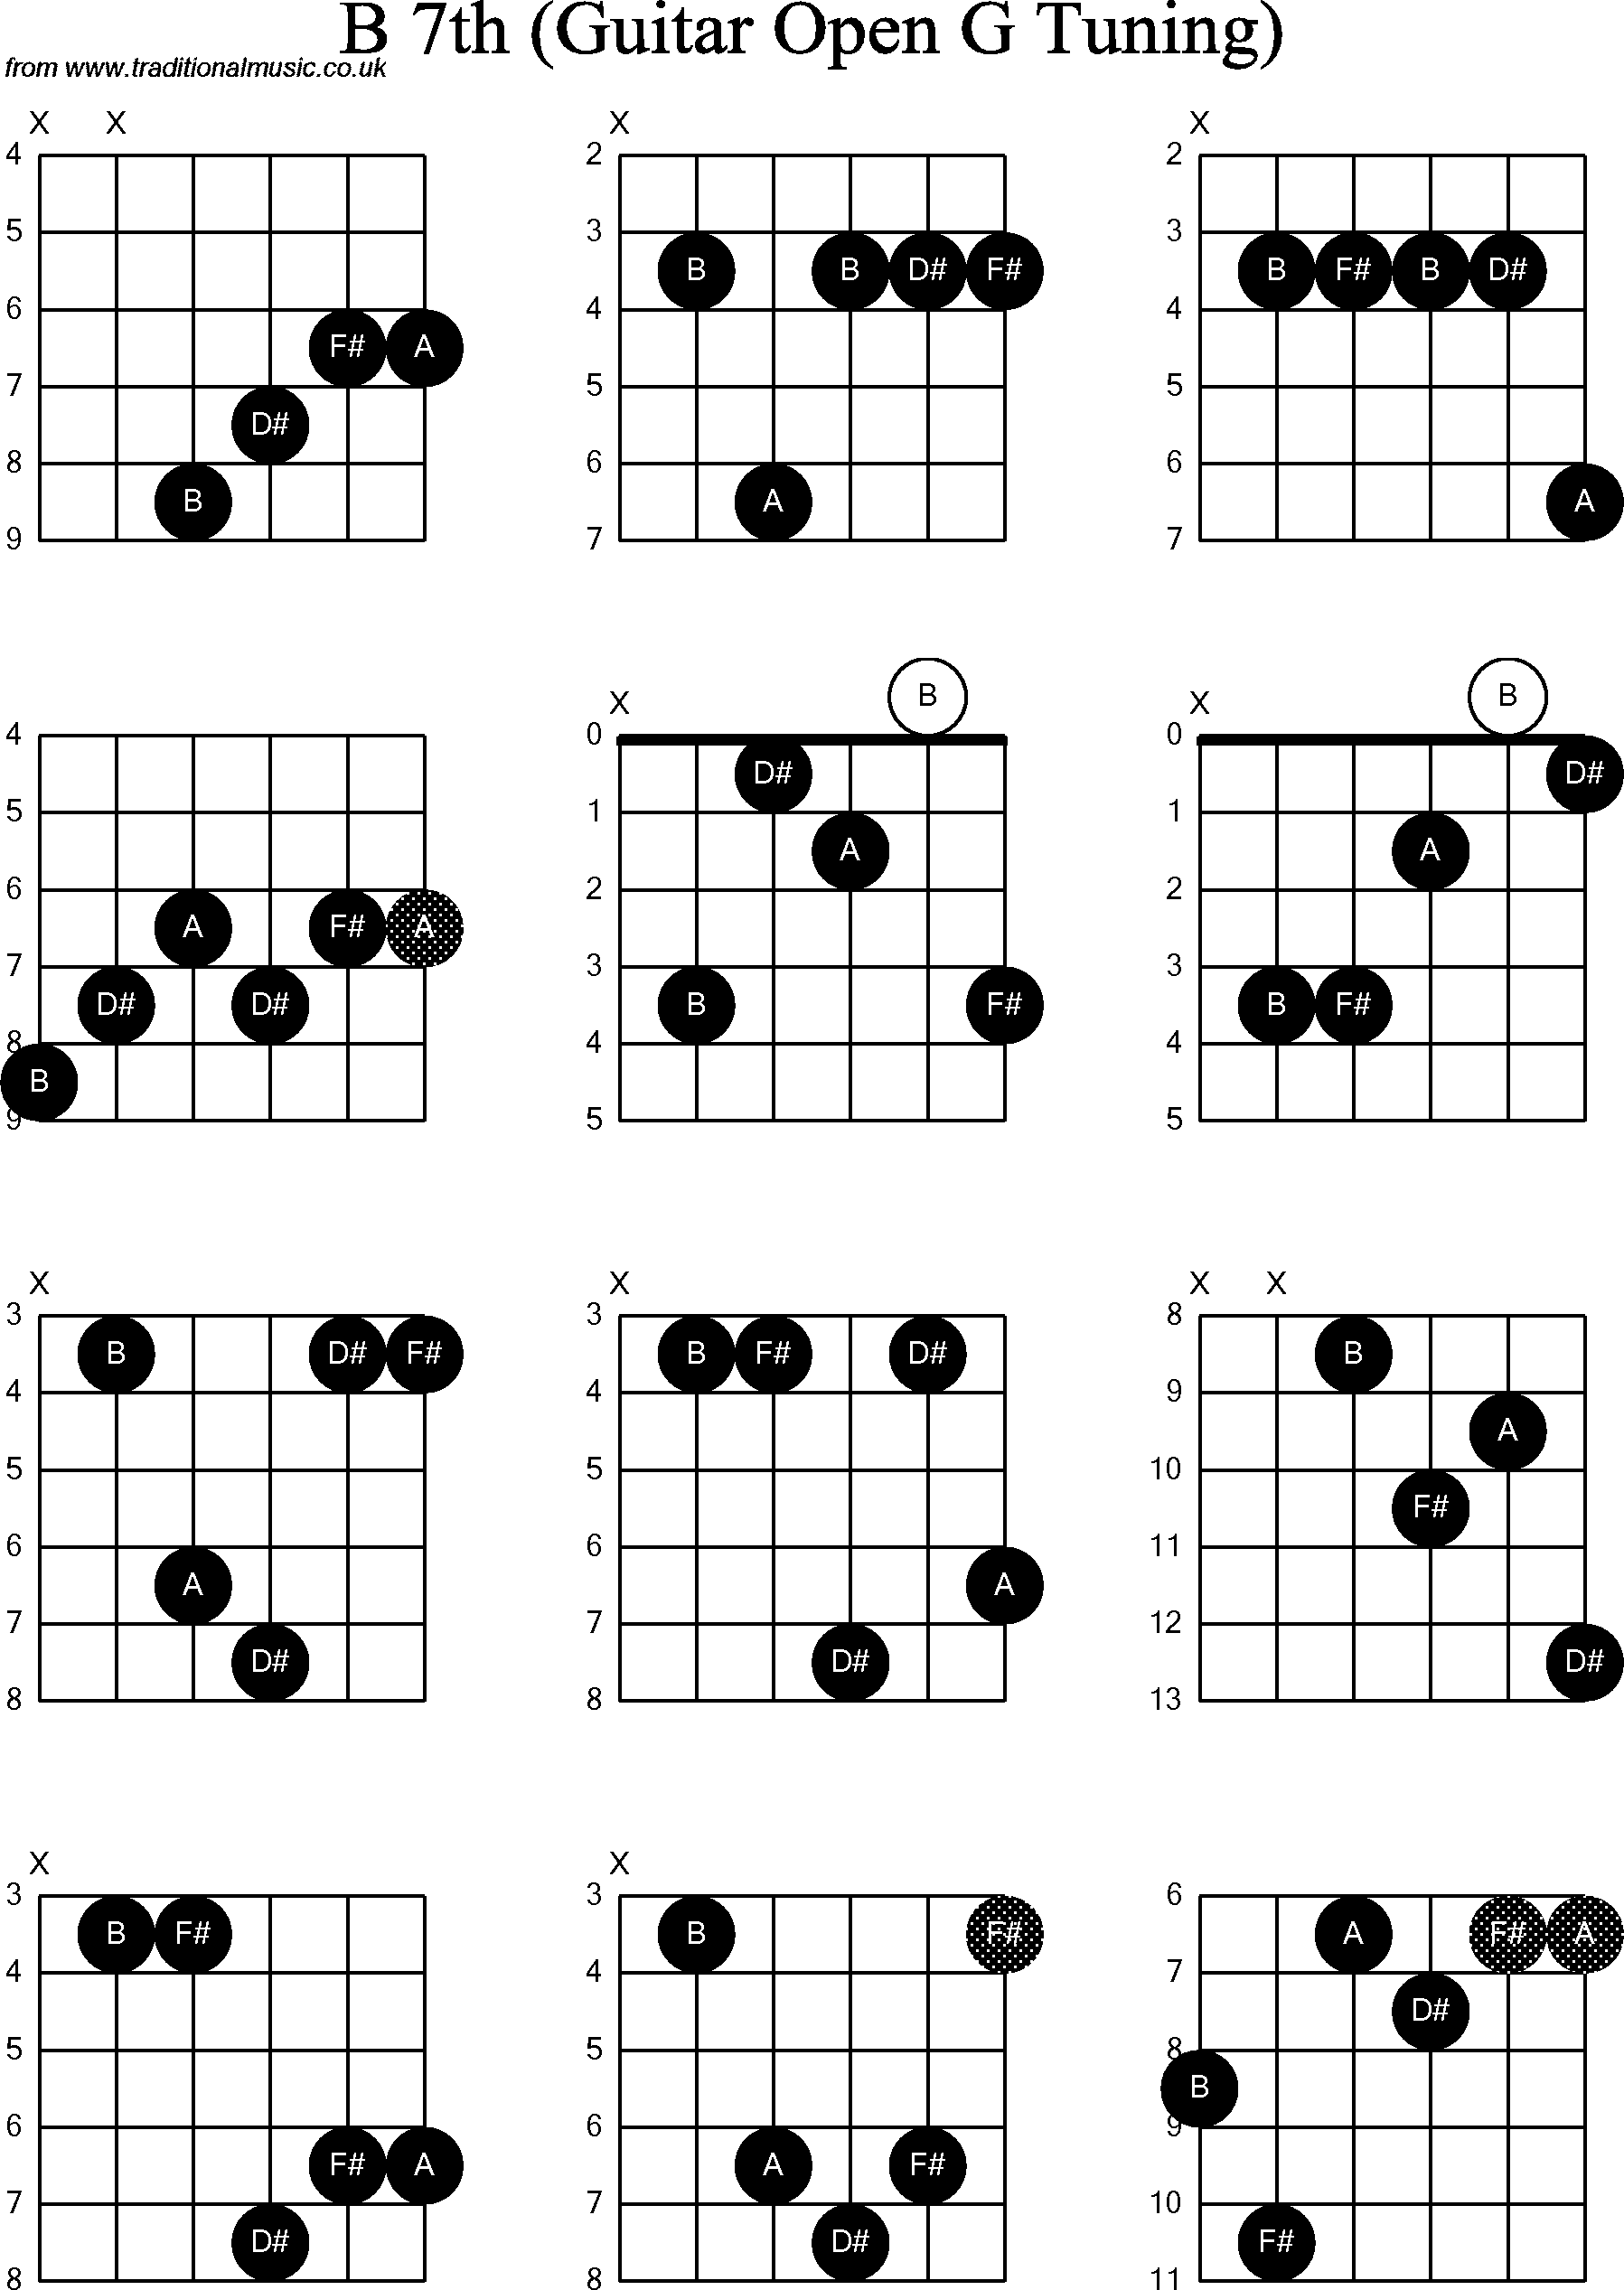 chord diagrams for  dobro b7th